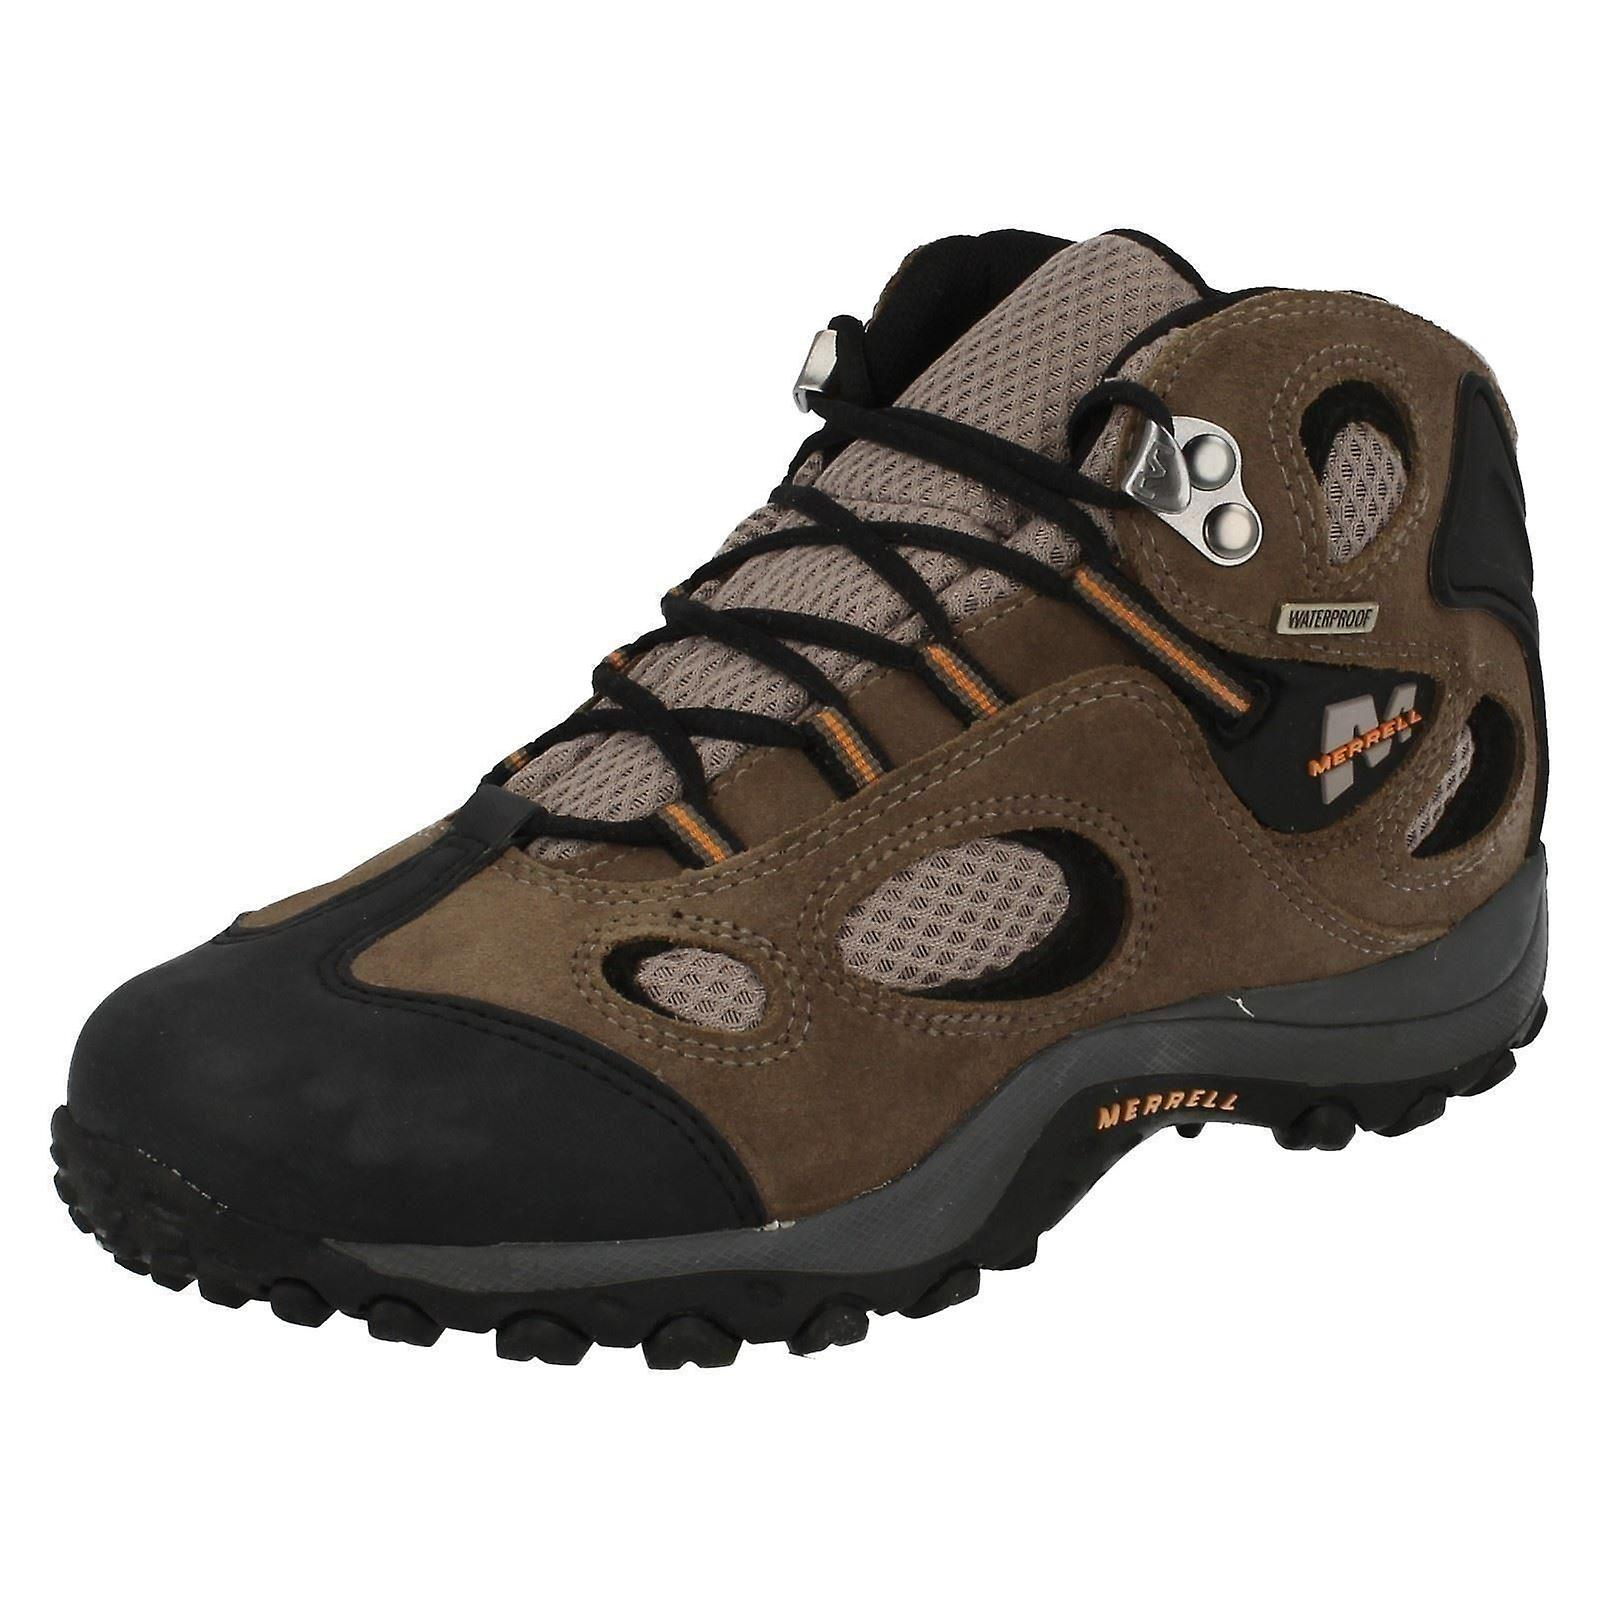 Garçons Merrell Waterproof bottines Chameleon Mid